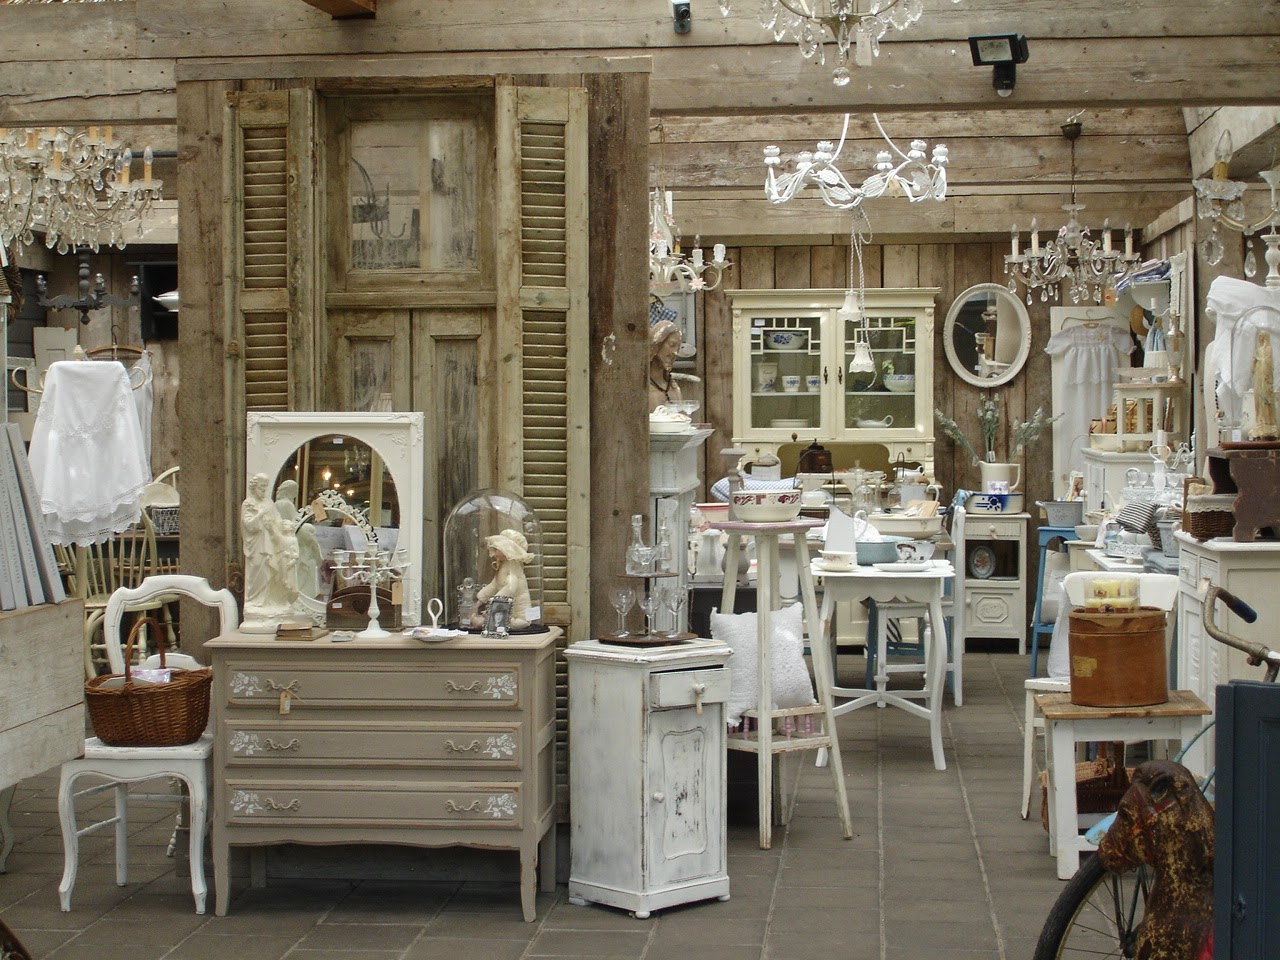 brocante charmante spontanausflug nach holland. Black Bedroom Furniture Sets. Home Design Ideas